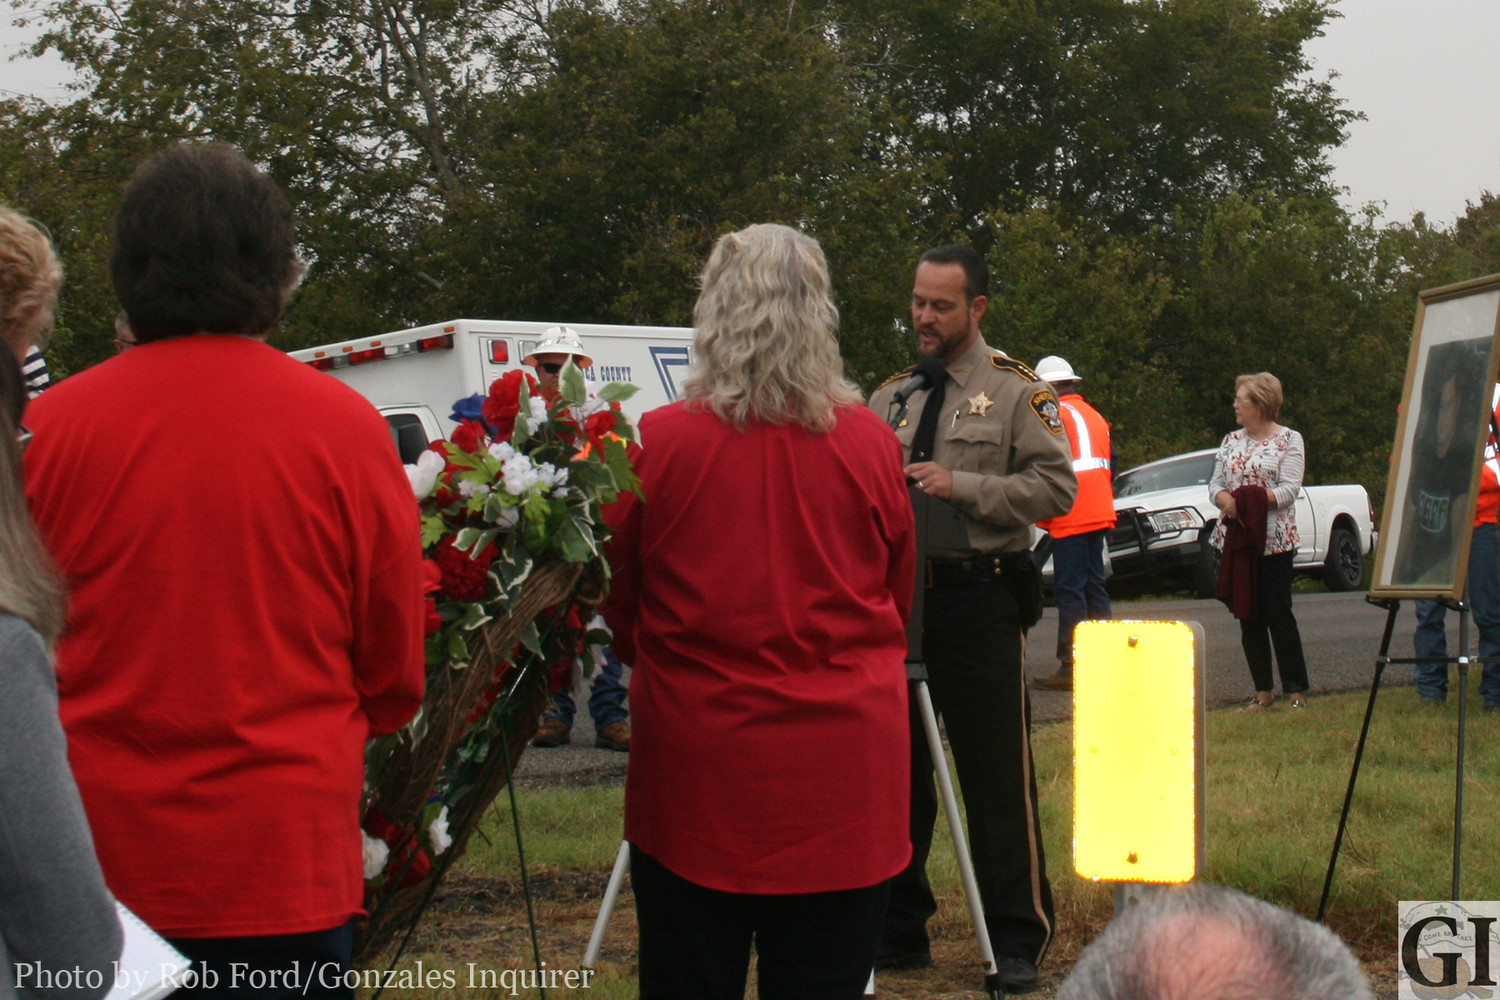 Gonzales County Sheriff Matt Atkinson spoke during a dedication renaming State Highway 95 in honor of fallen deputy Sgt. David M. Furrh, who was killed in the line of duty 17 years ago.